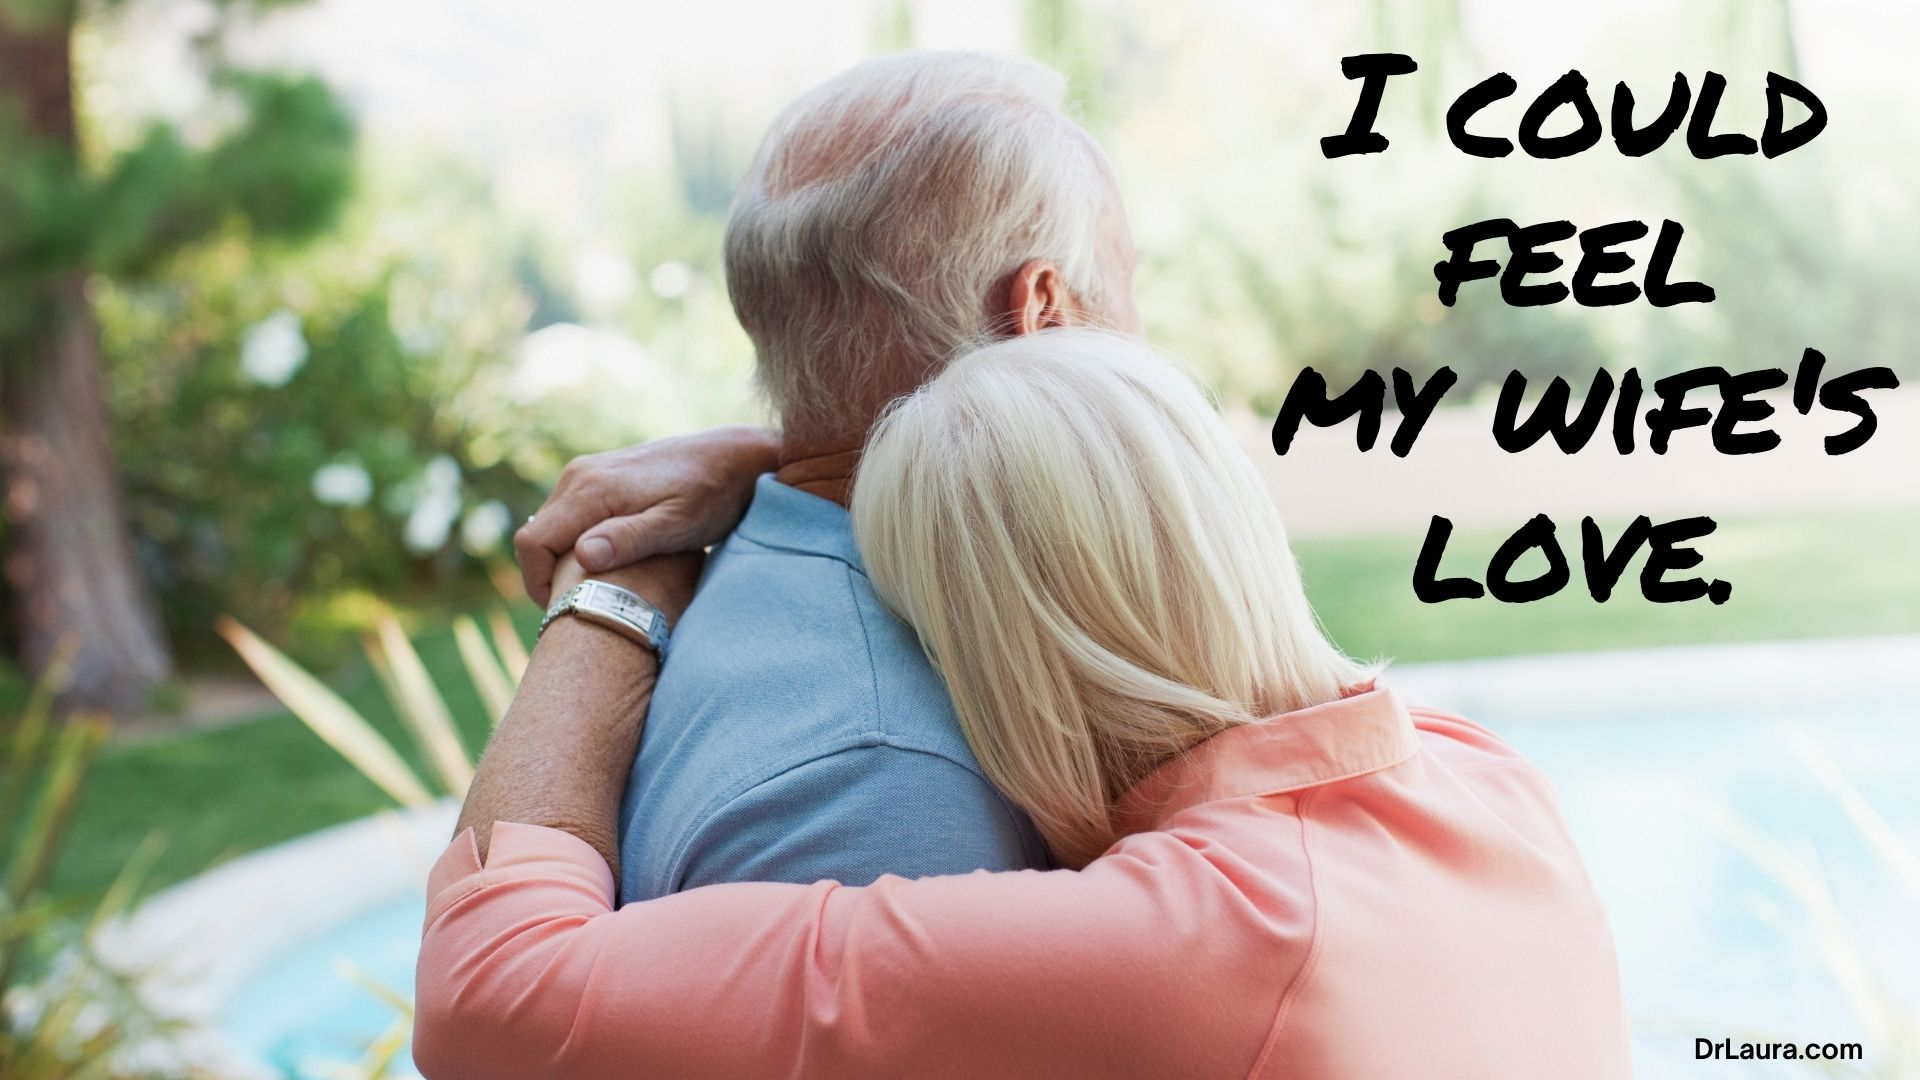 Why I Loved My Wife